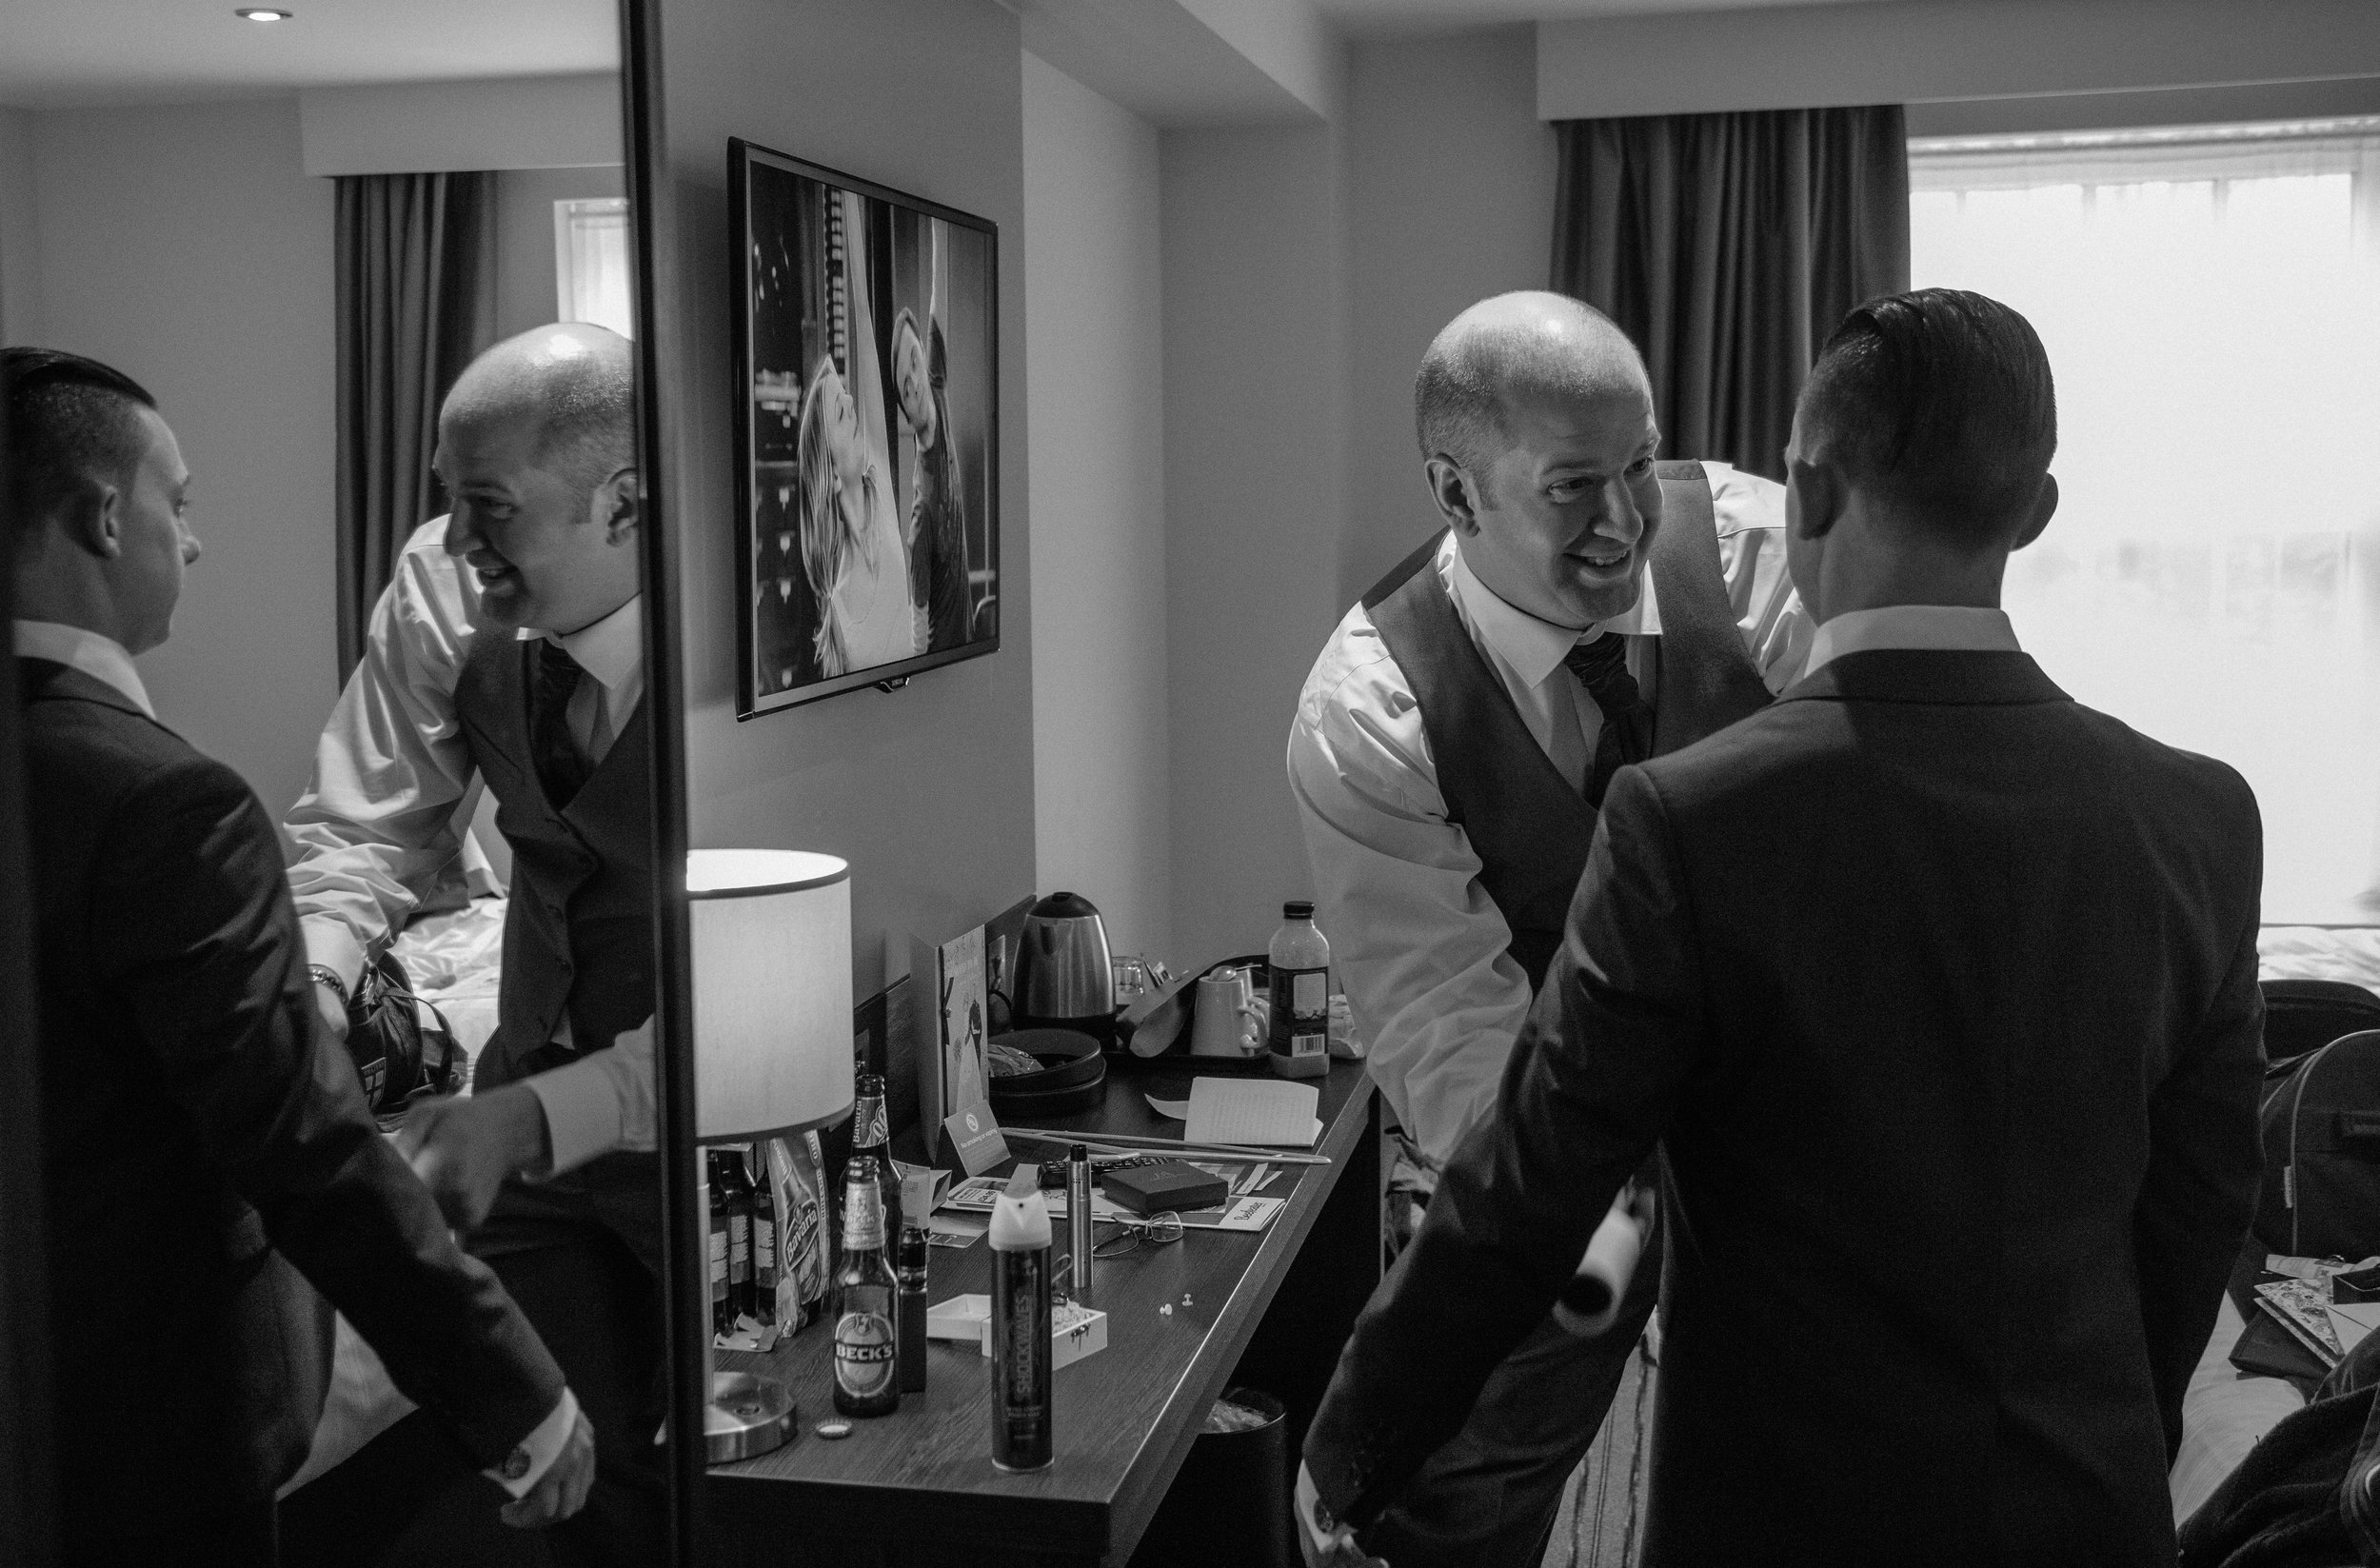 northbrook-park-hampshire-spring-winter-wedding-photography-groom-prep-10